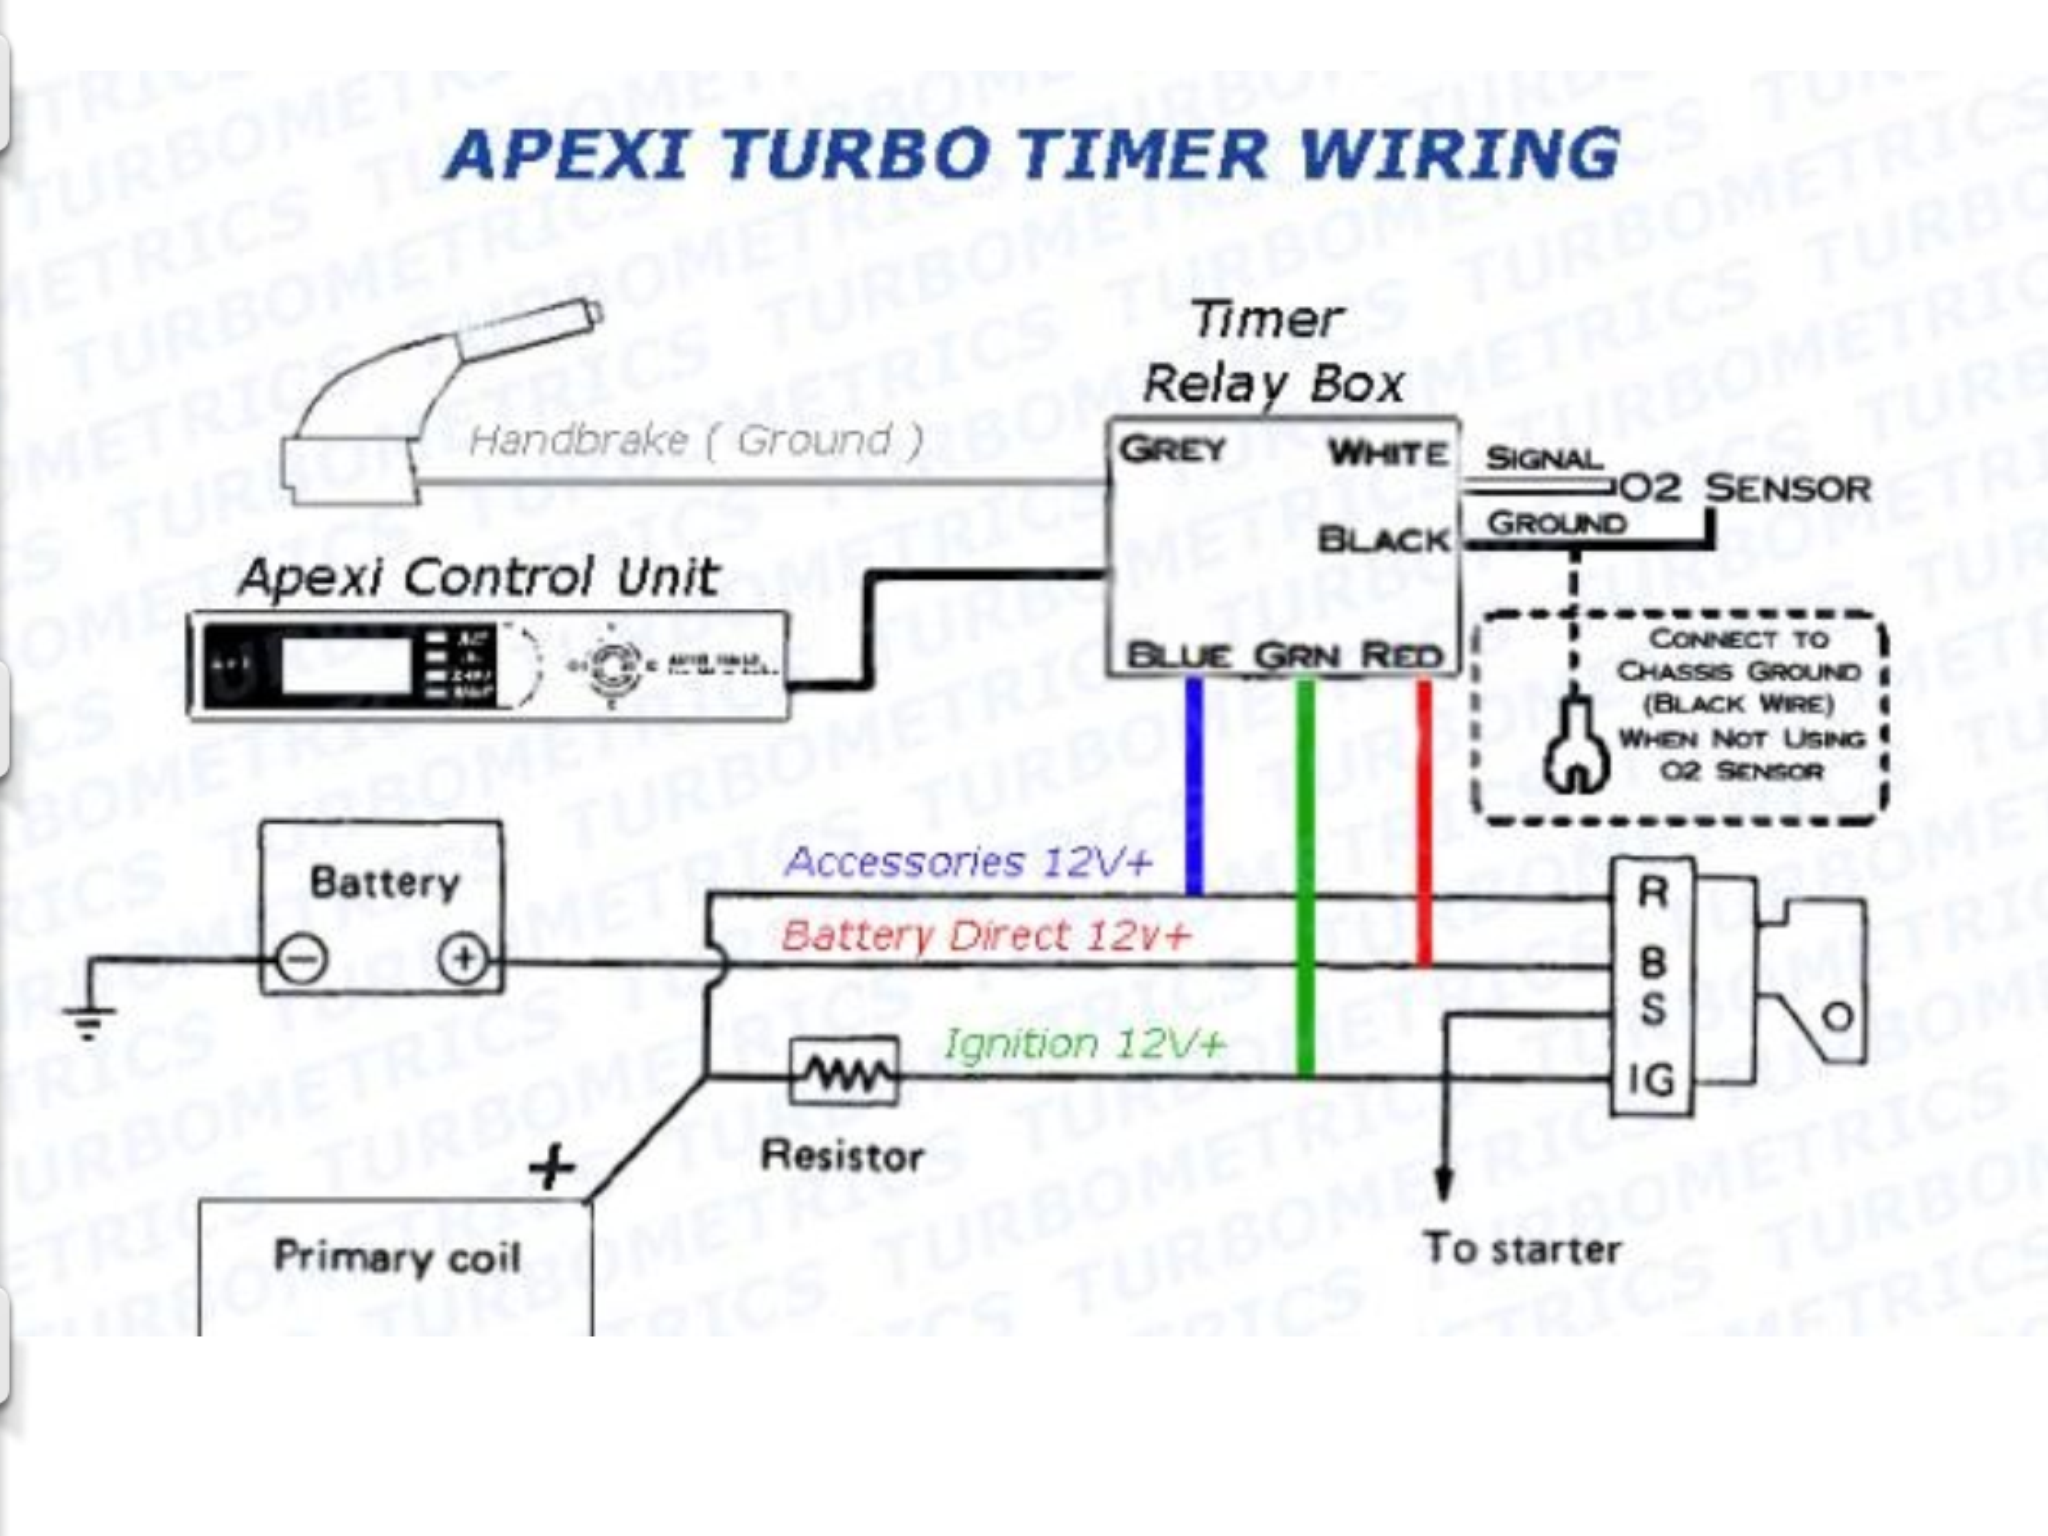 Blitz Dual Turbo Timer Wiring Diagram Page 2 And House Pool Rh 107 191 48 167